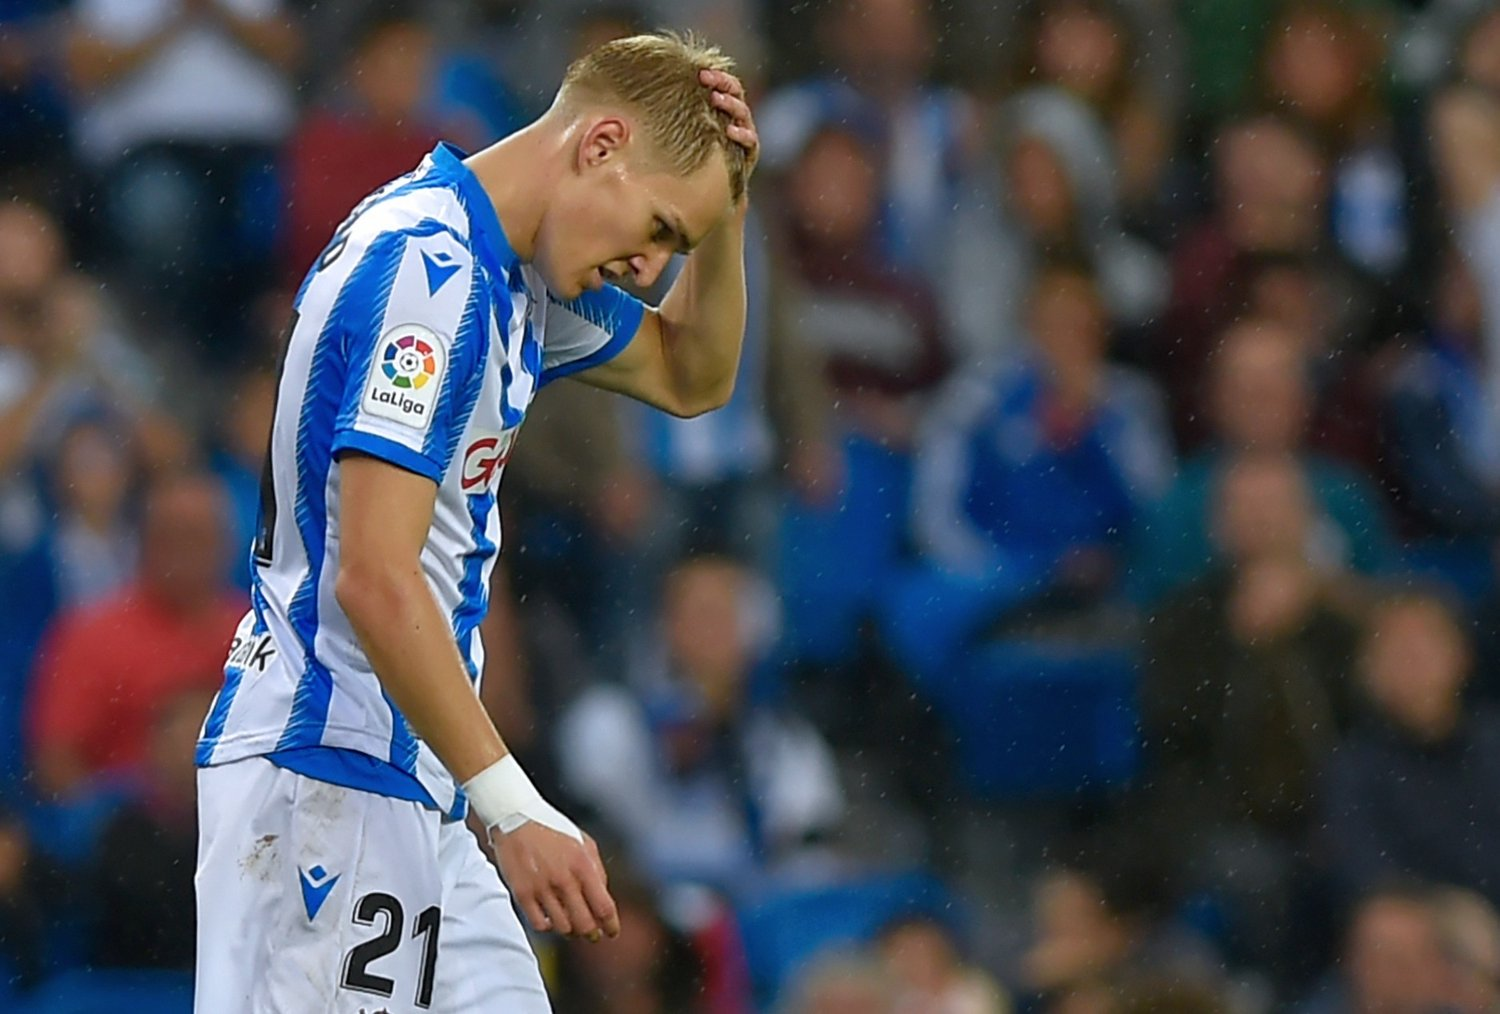 Real Sociedad's Norwegian midfielder Martin Odegaard gestures during the Spanish league football match between Real Sociedad and Getafe CF at the Anoeta stadium in San Sebastian on October 6, 2019.